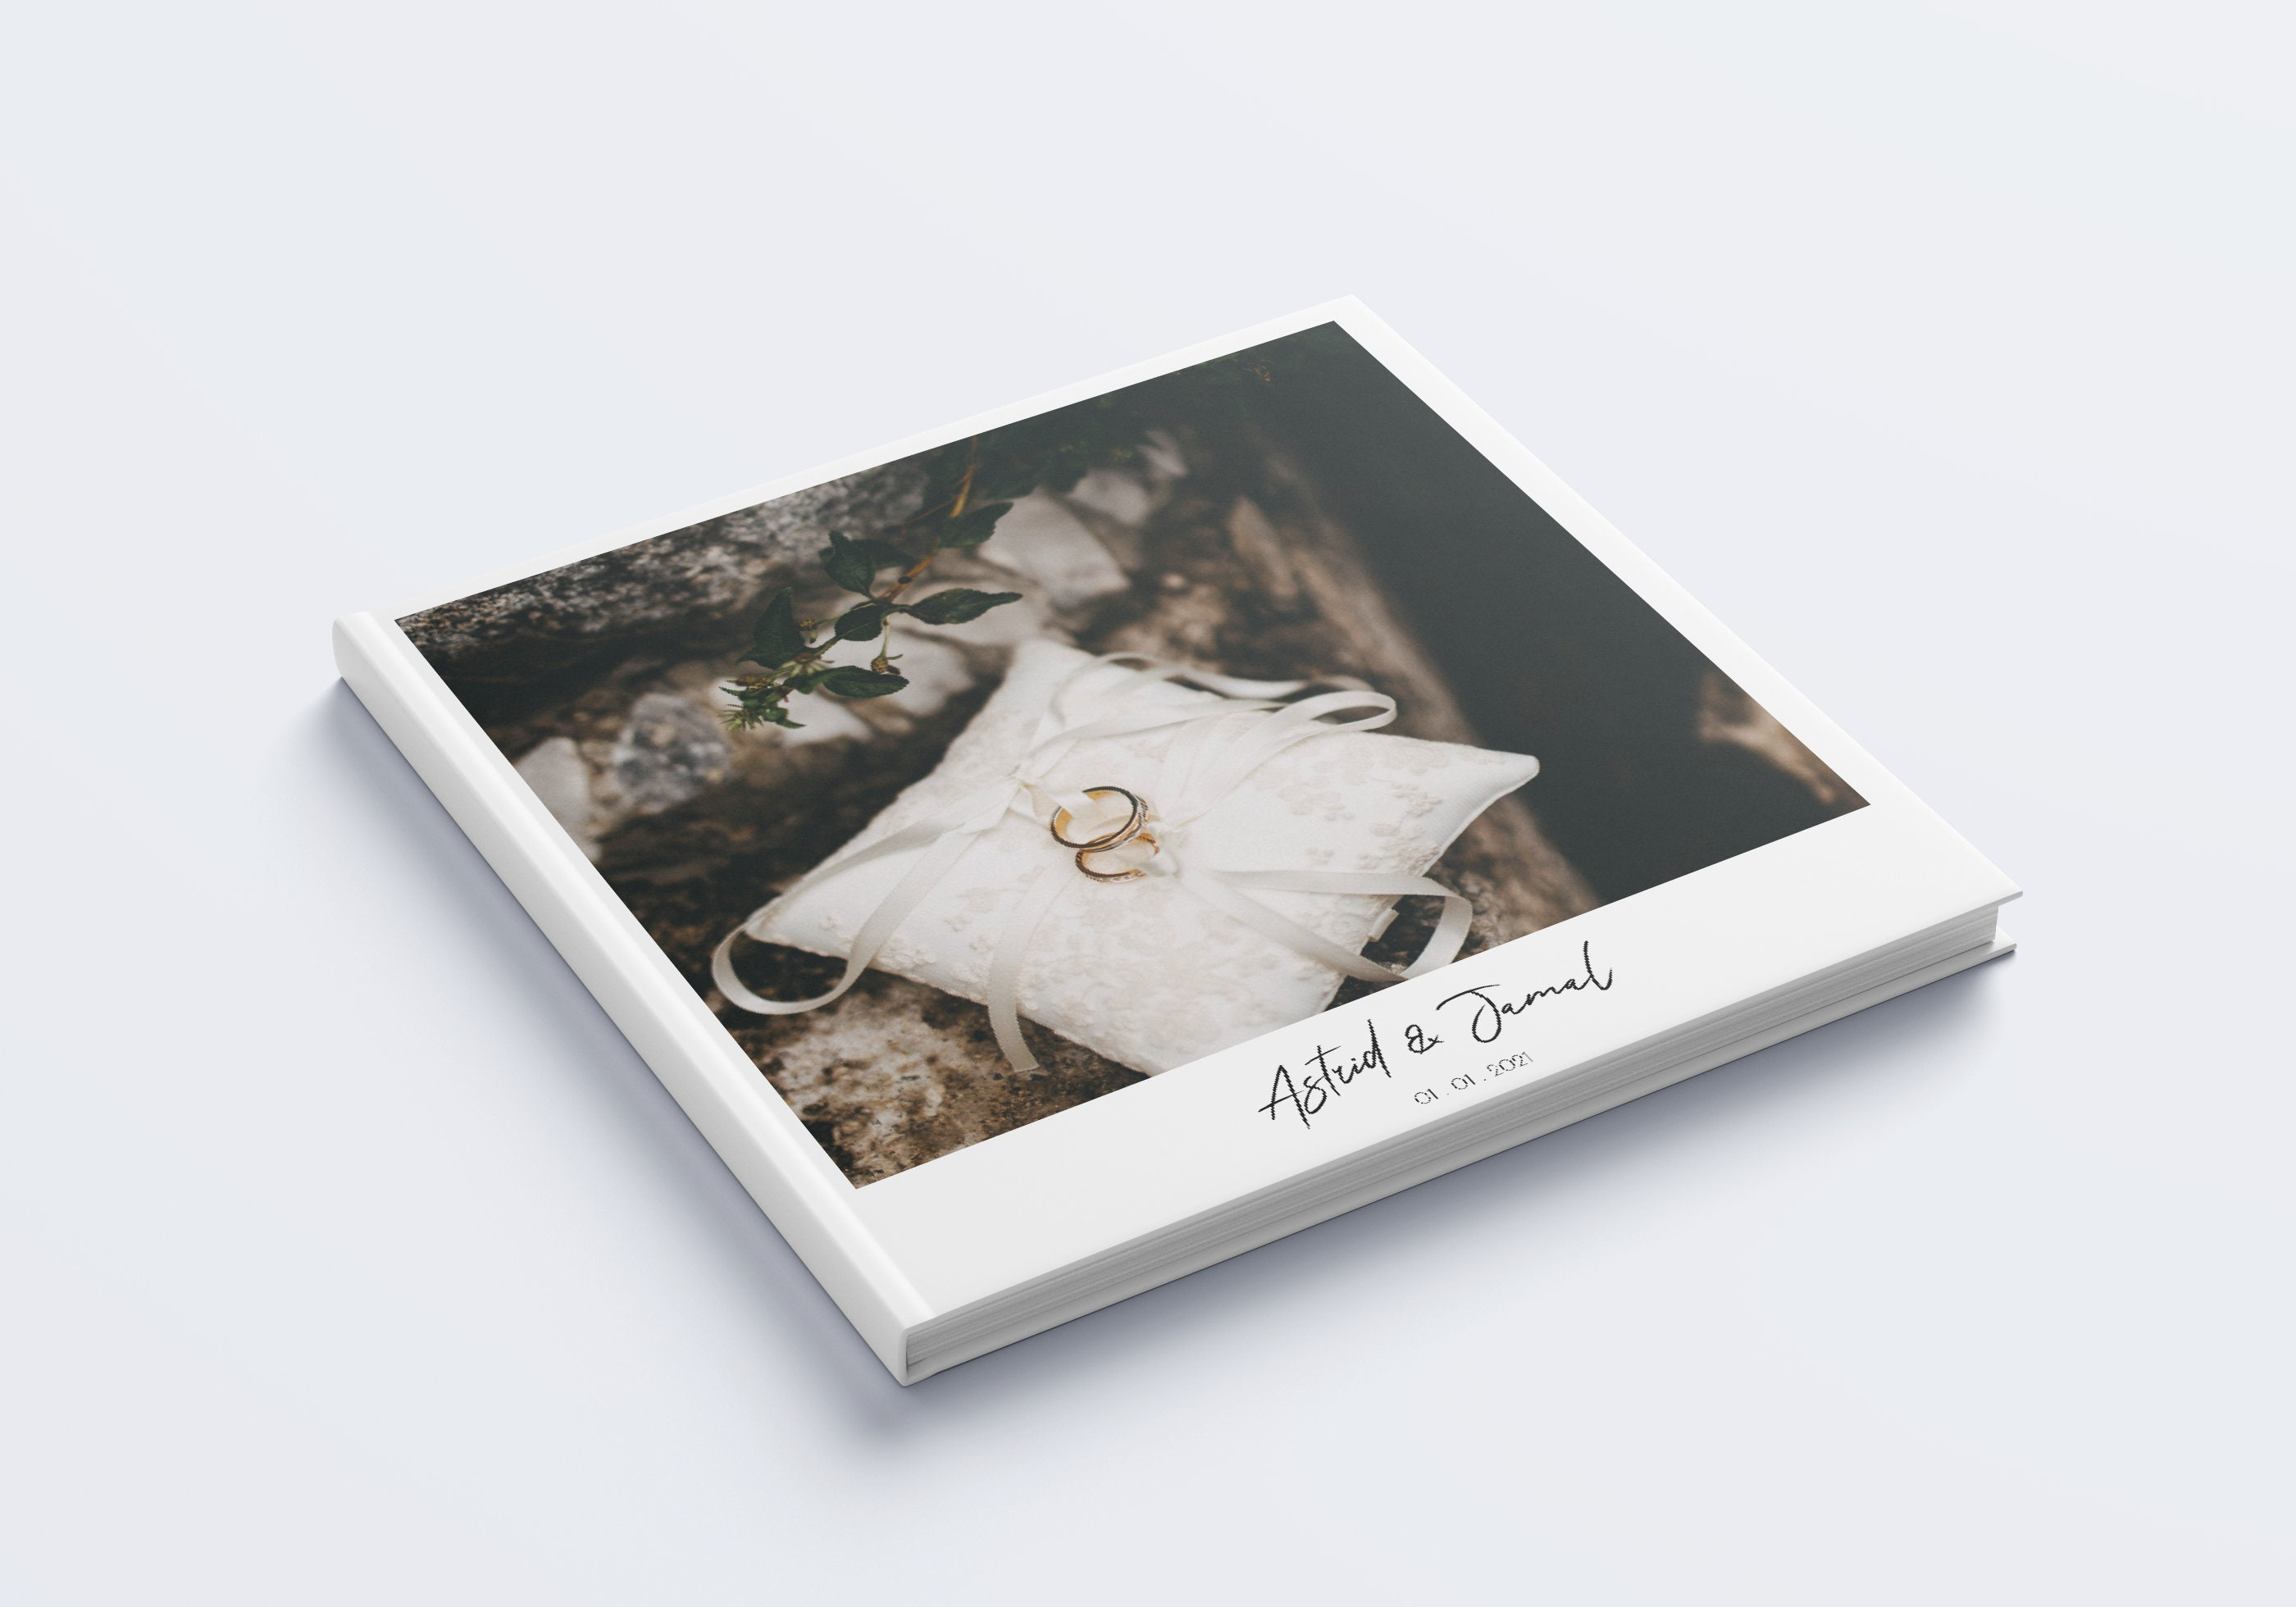 A photograph of a square hardcover book, with a wedding photo printed on the front cover. There is some text underneath the image, on a white background, with the couples names and wedding date.